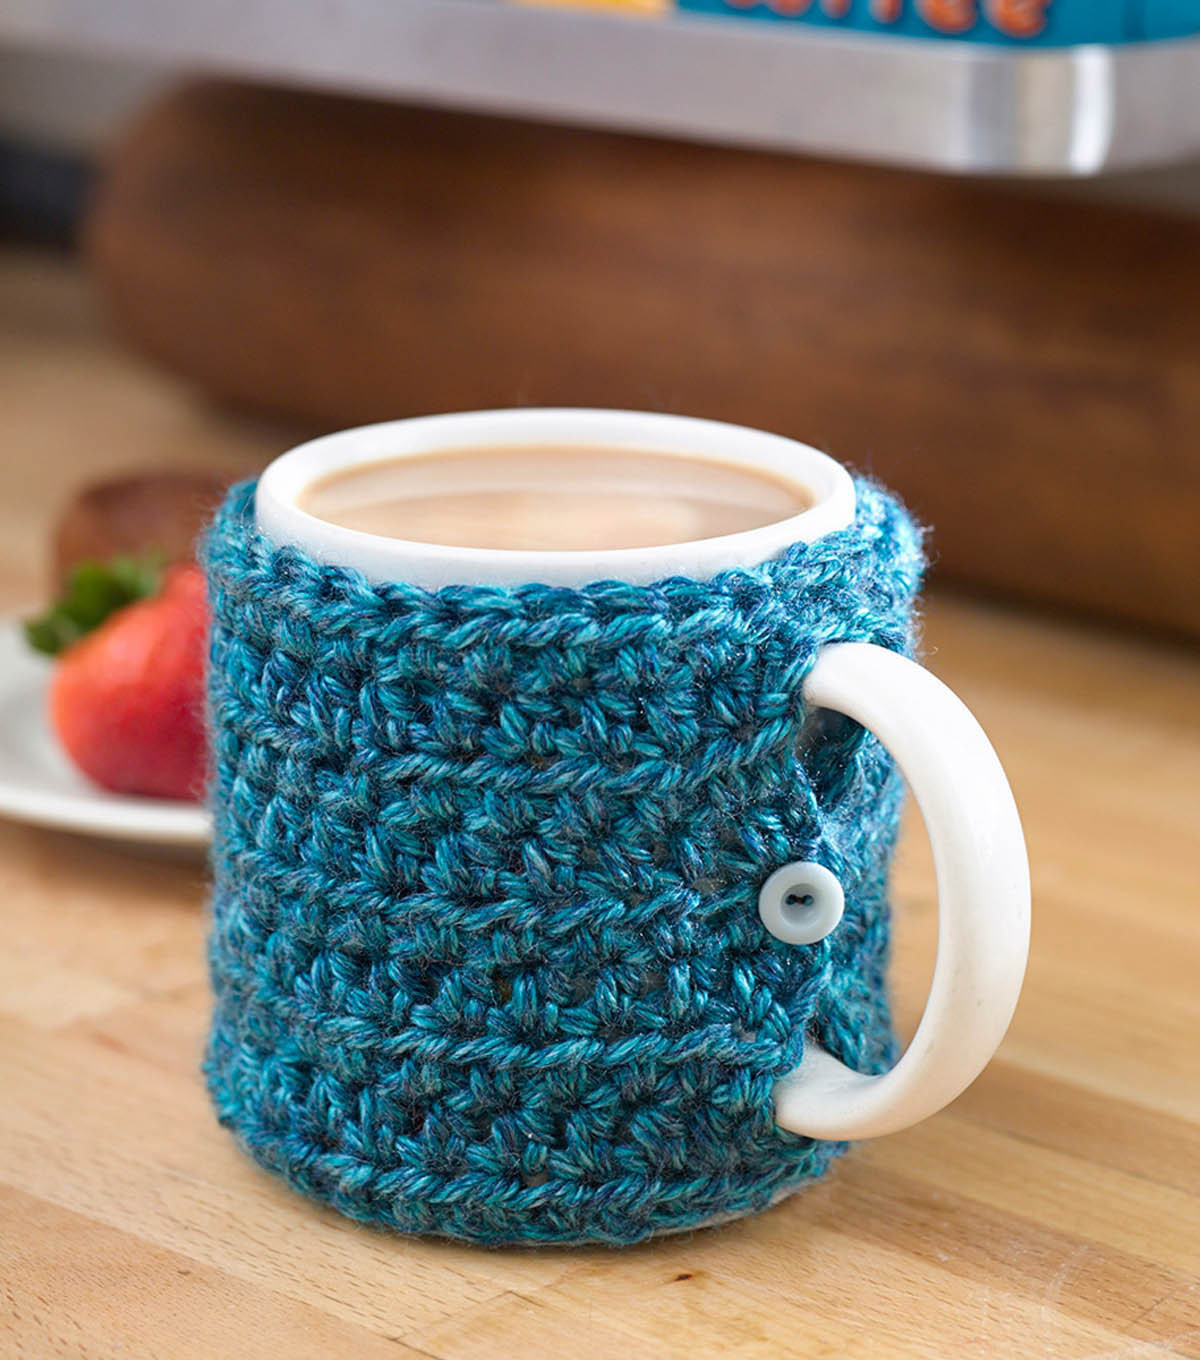 Craftdrawer Crafts Free Easy to Crochet Mug Cozy Patterns